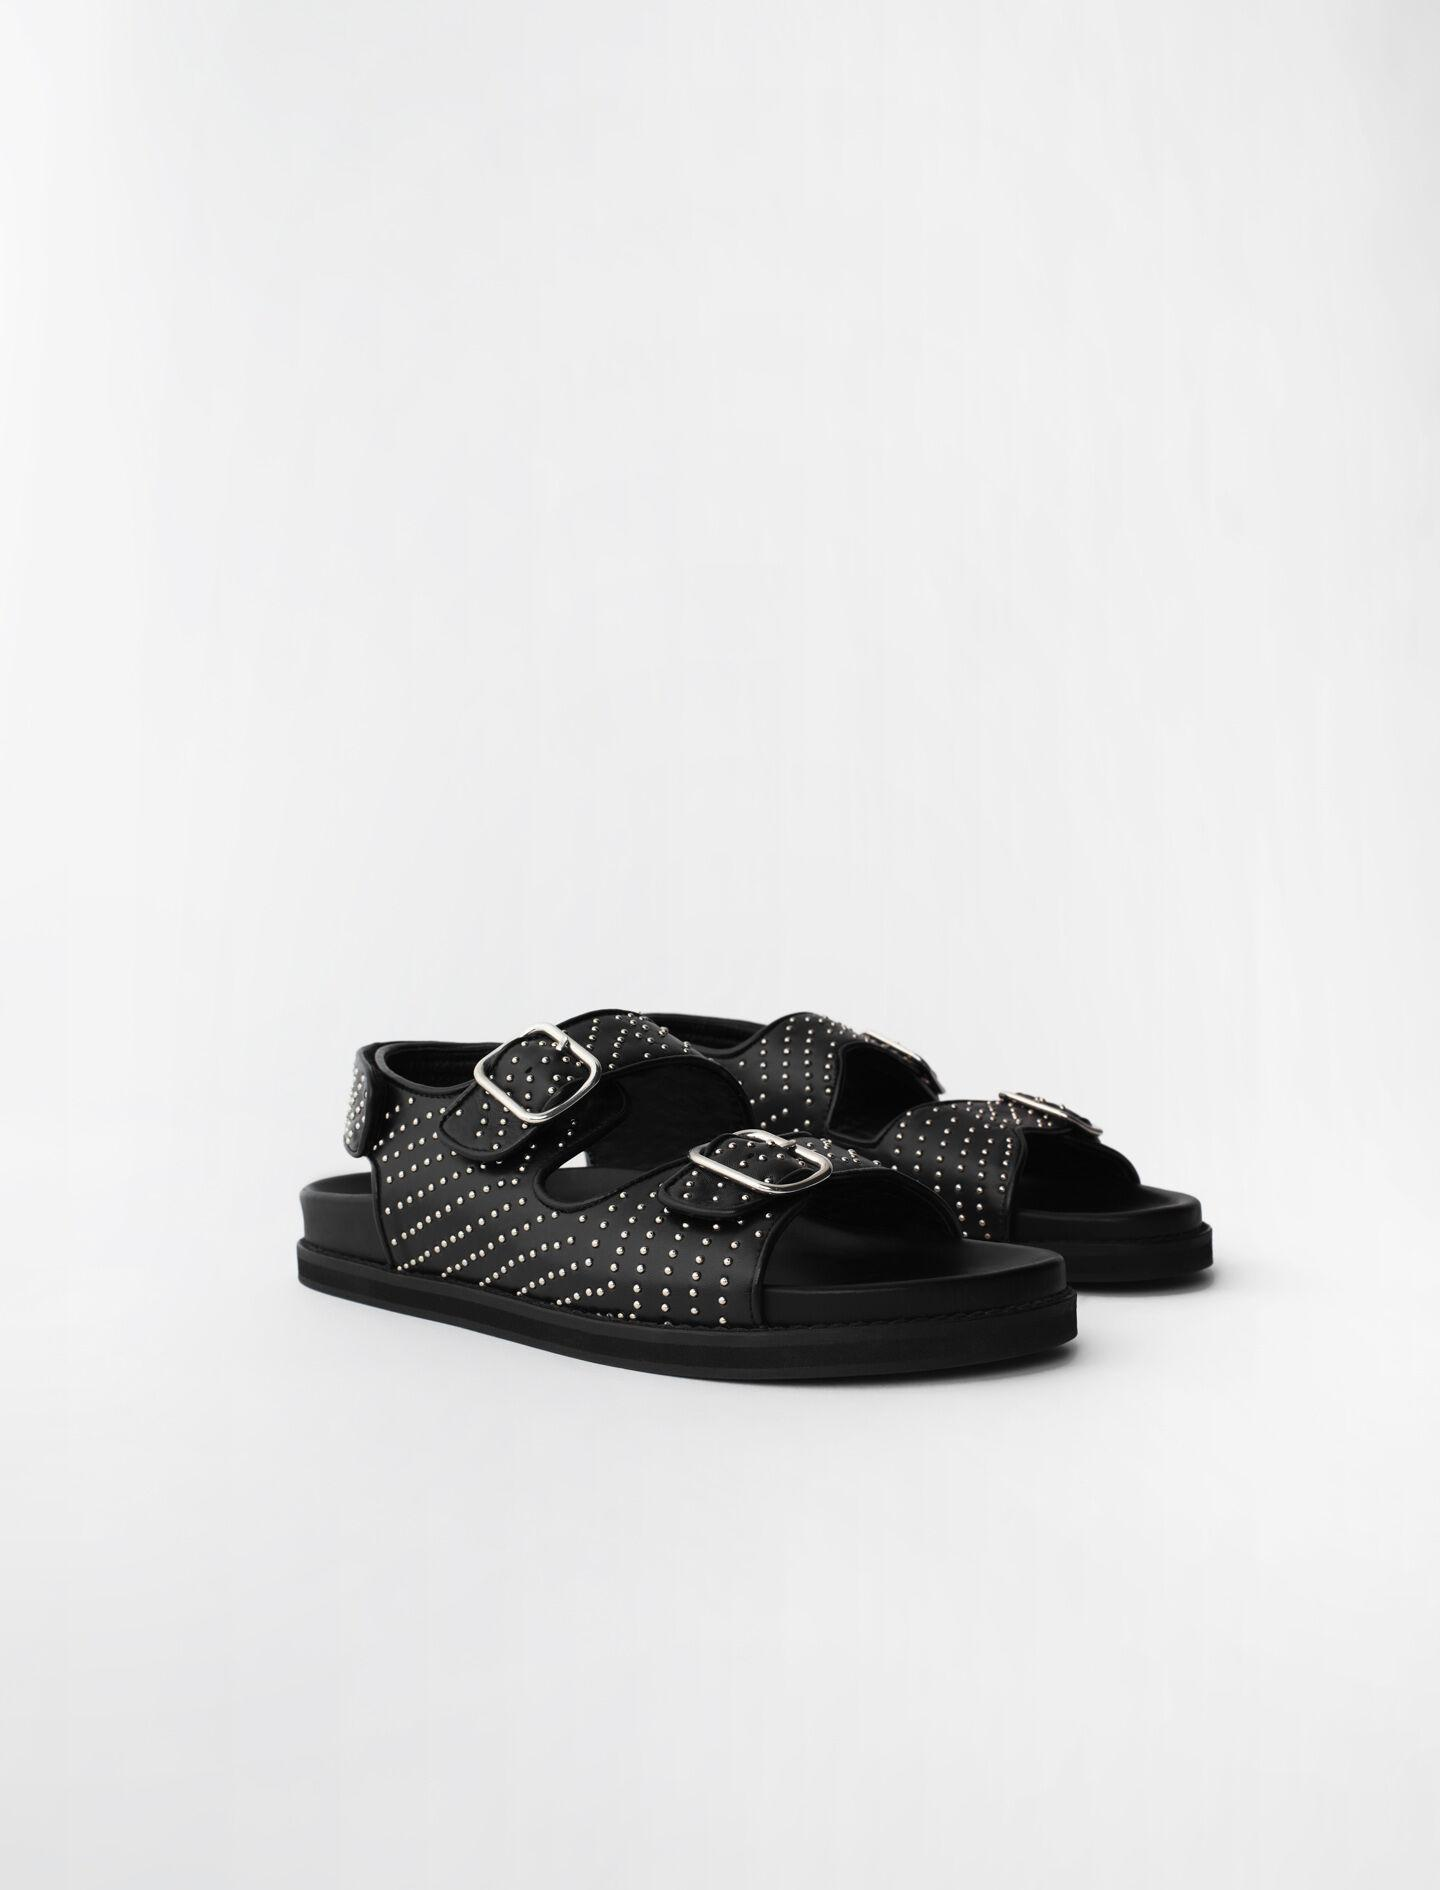 STUDDED SANDALS WITH BUCKLES 1